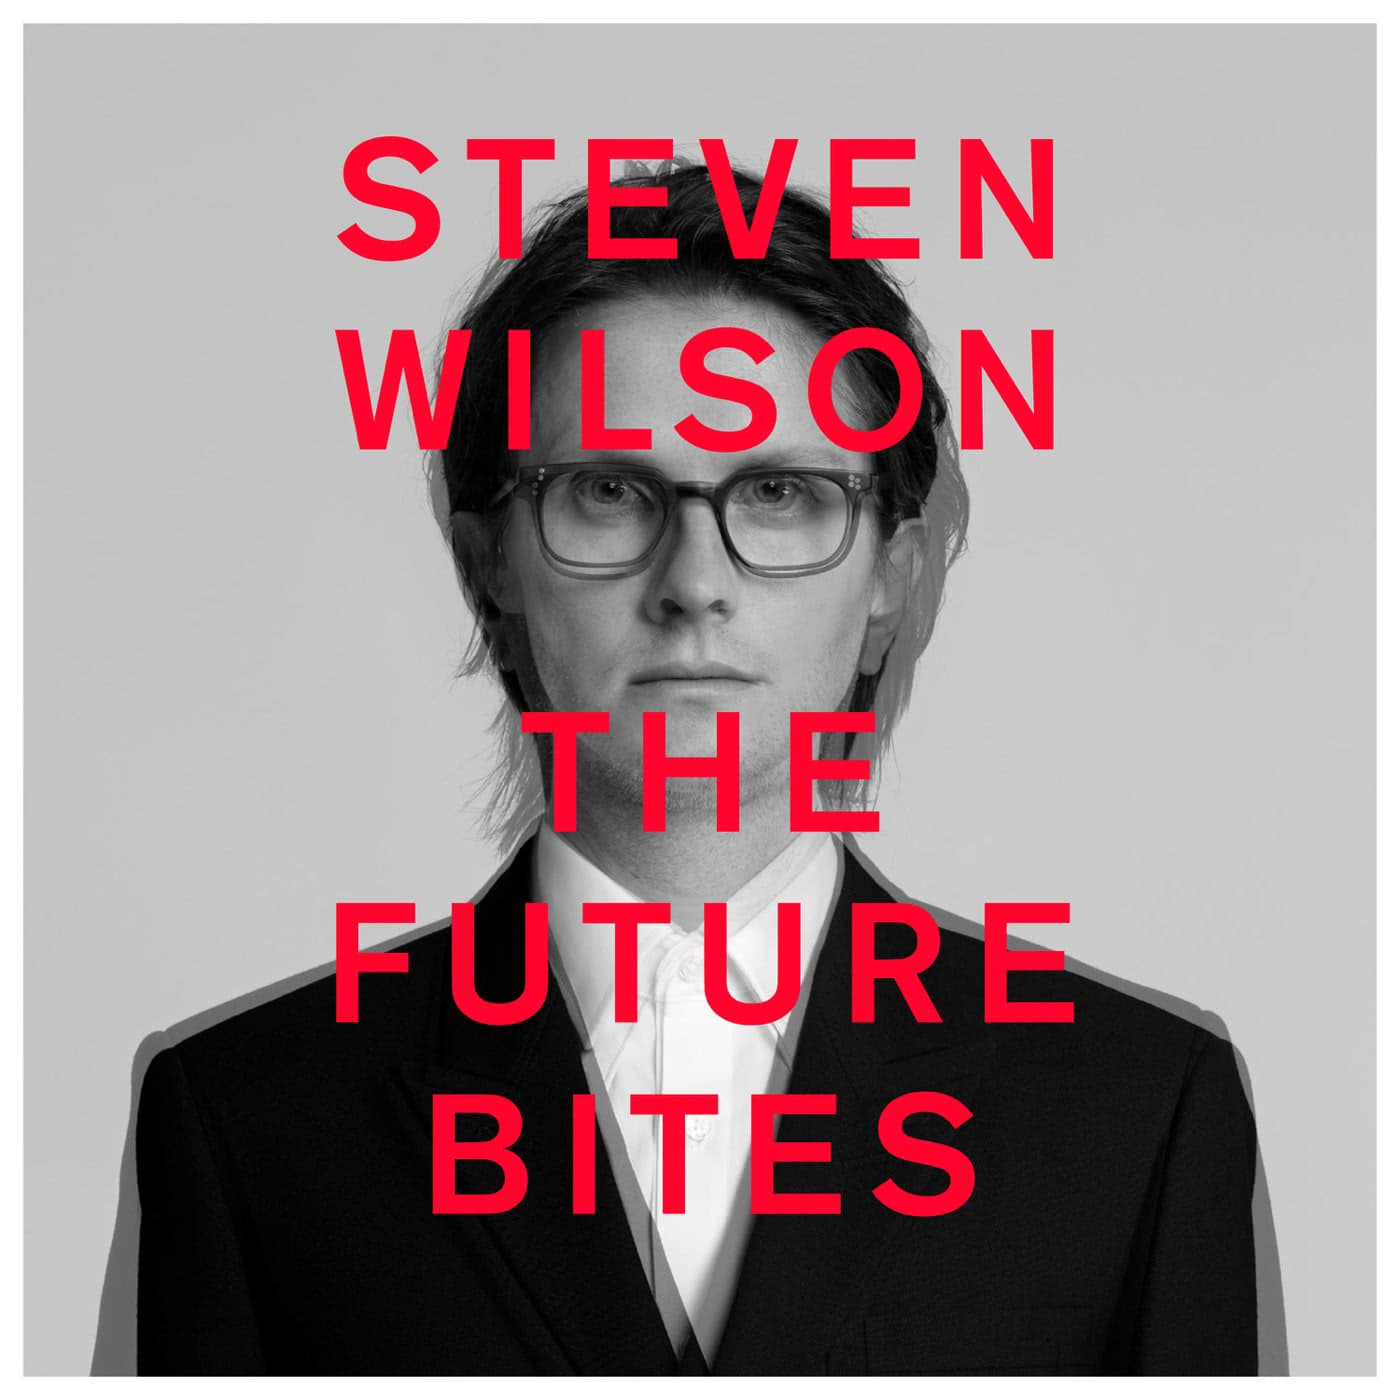 Steven Wilson - The Future Bites (2021)